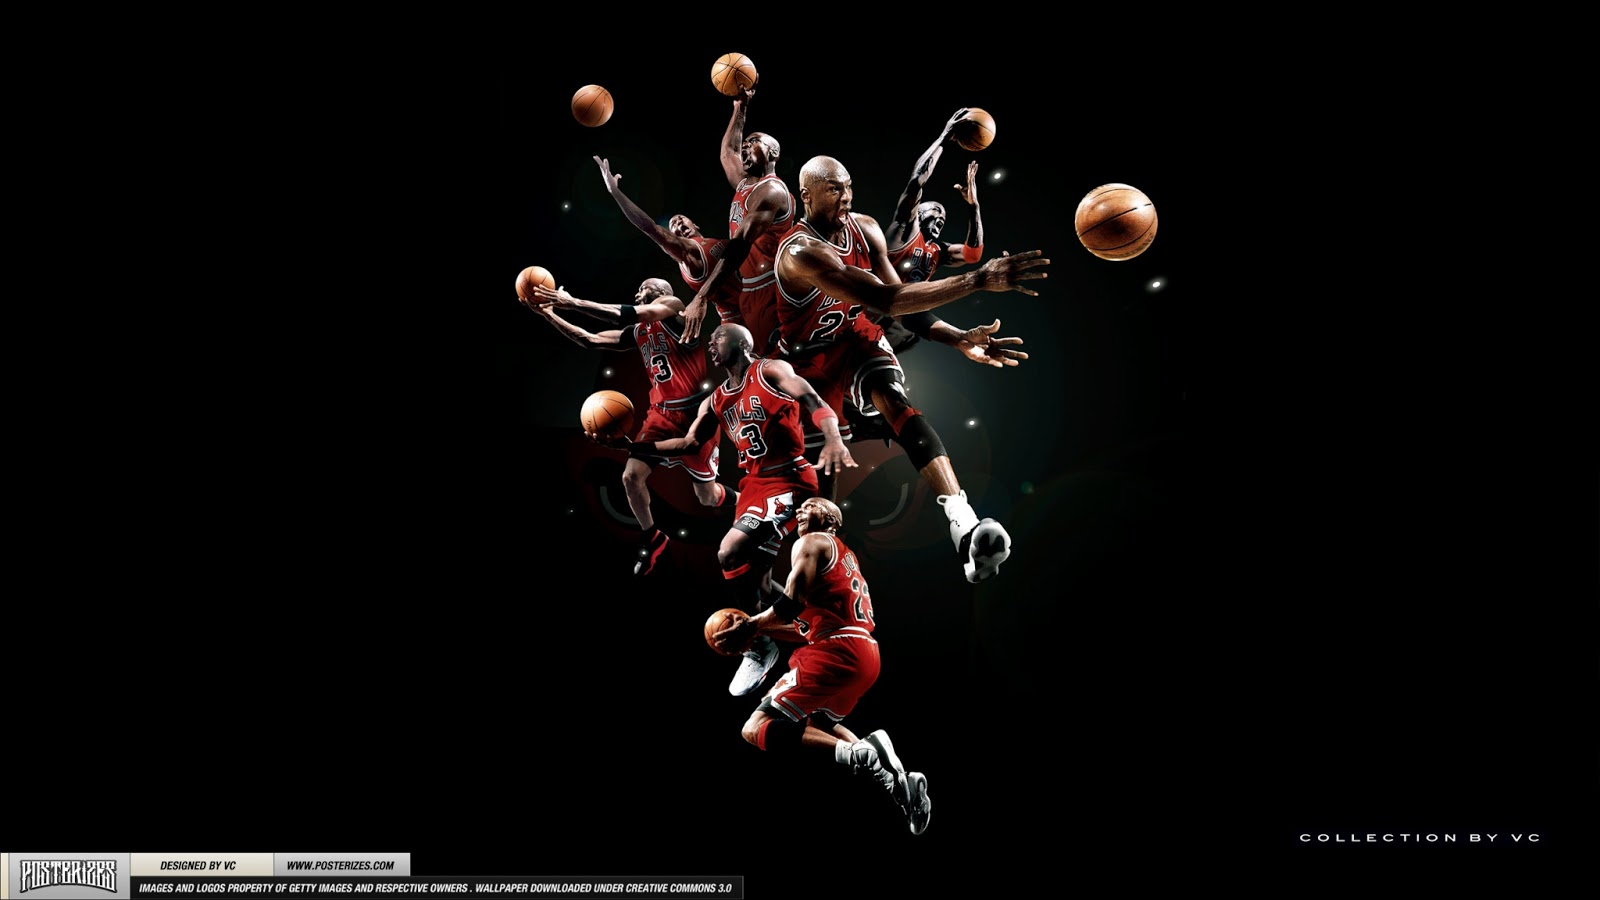 Michael Jordan HD Wallpapers – wallpaper202